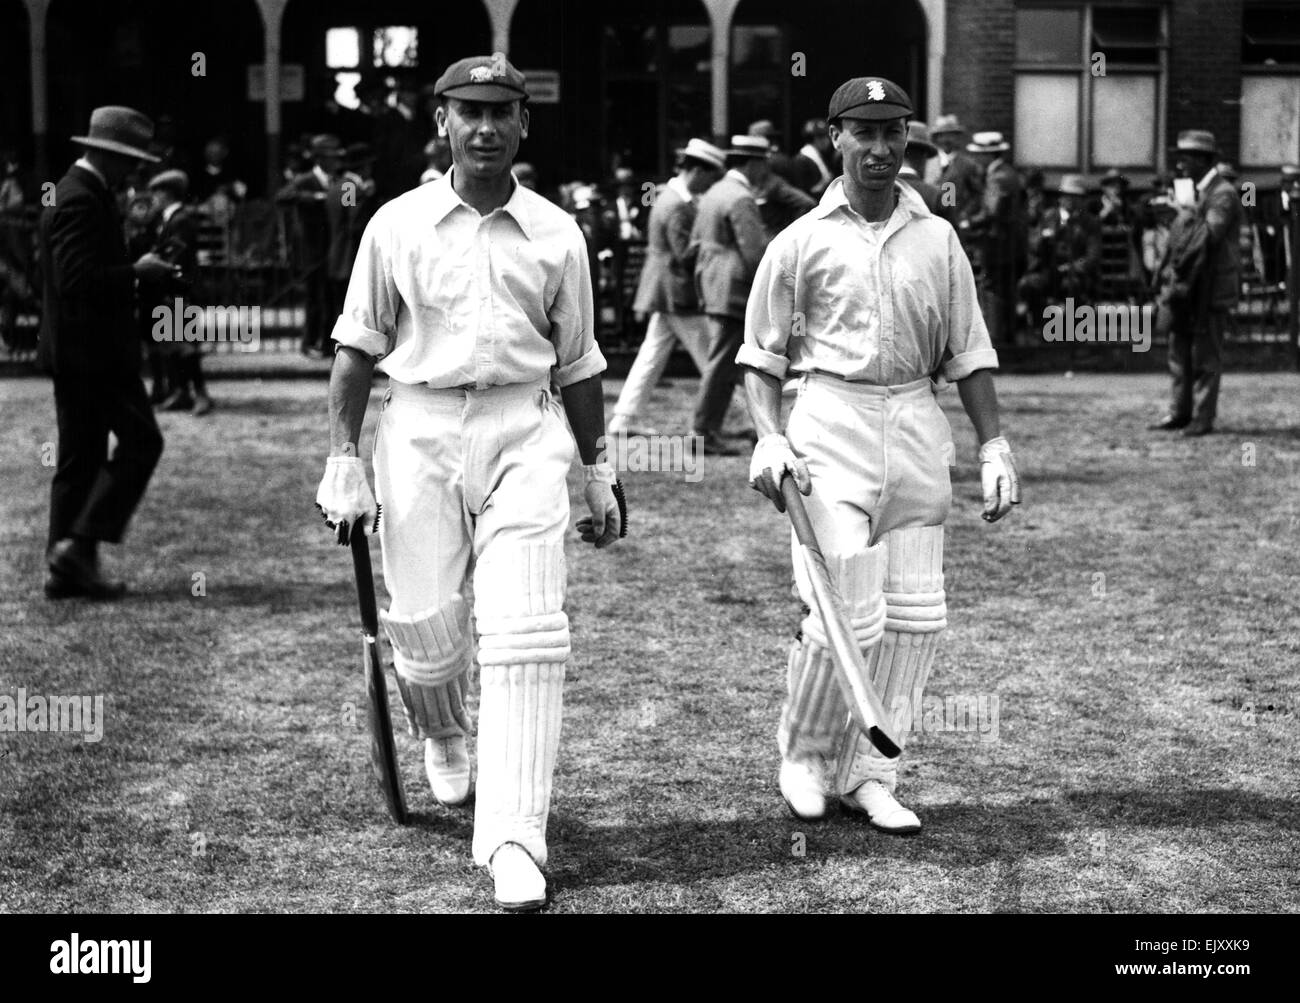 Kent v Surrey. Jack Hobbs (left) and Andrew Sandham walk out to open the batting for Surrey. 23rd July 1923. - Stock Image